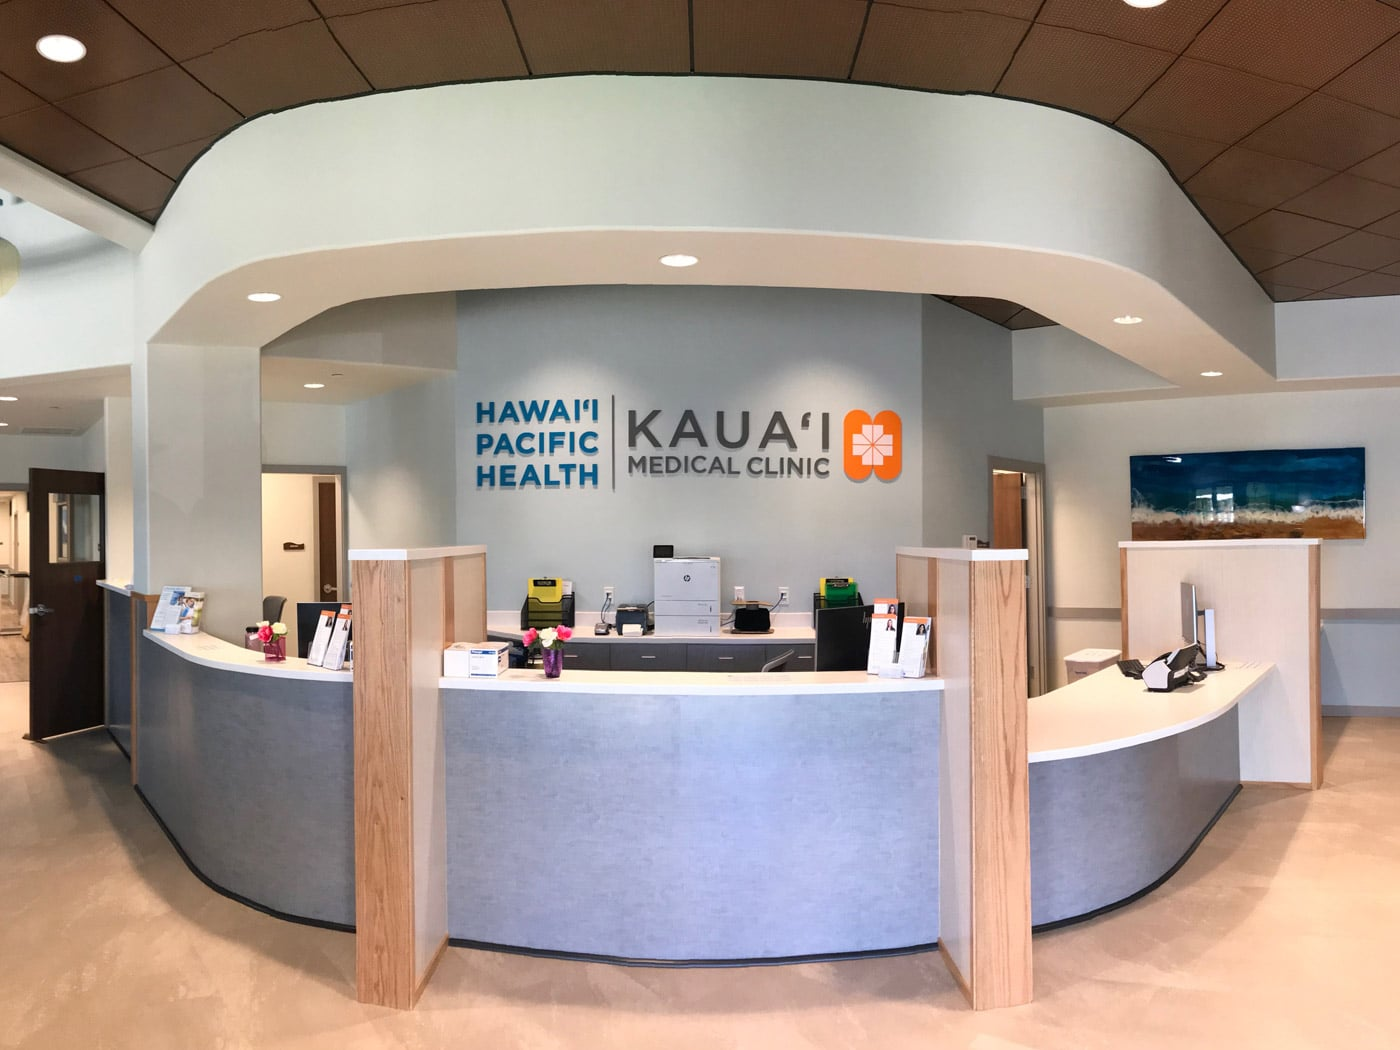 Kauai Village Shopping Center - Kauai Medical Clinic